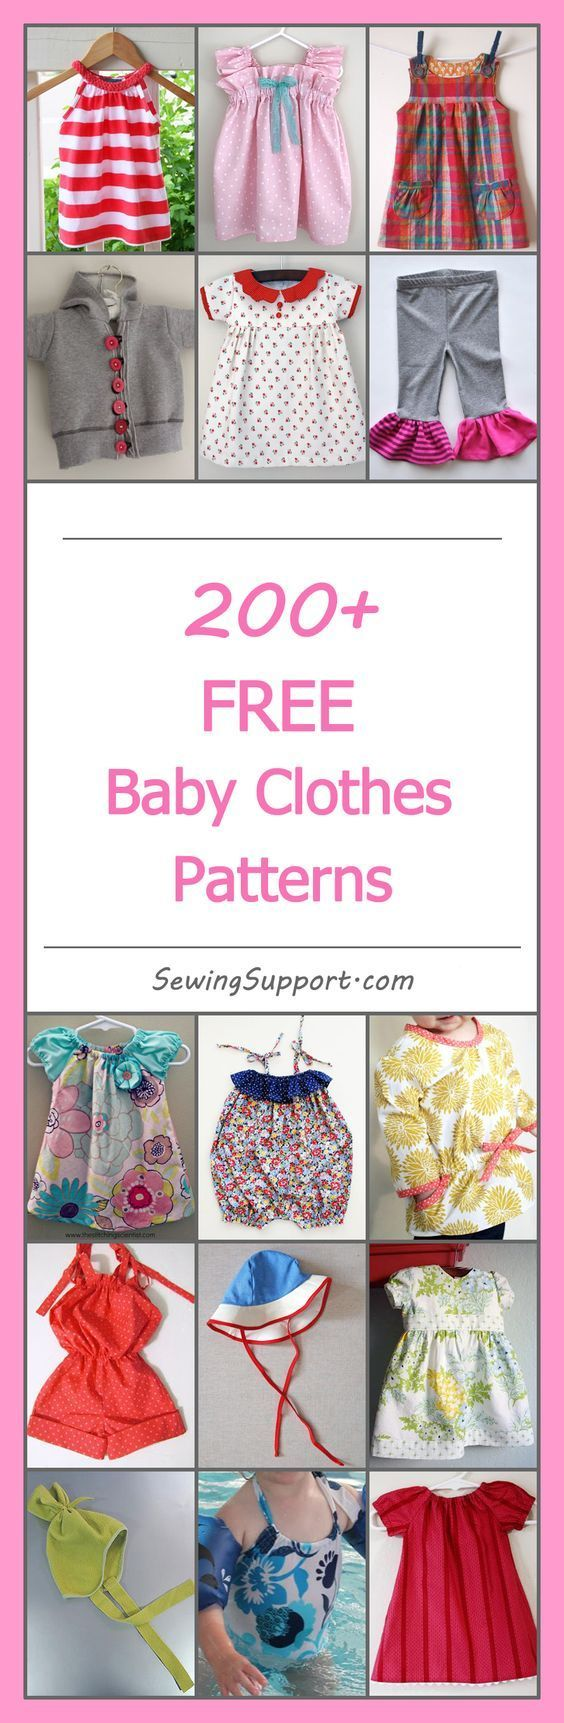 Lots of cute, free baby clothes patterns, tutorials, and diy sewing projects for boys and girls. Many simple, easy designs. Sew dresses, rompers, hats, booties, and more. #babyclothespatterns #fashionsewing,